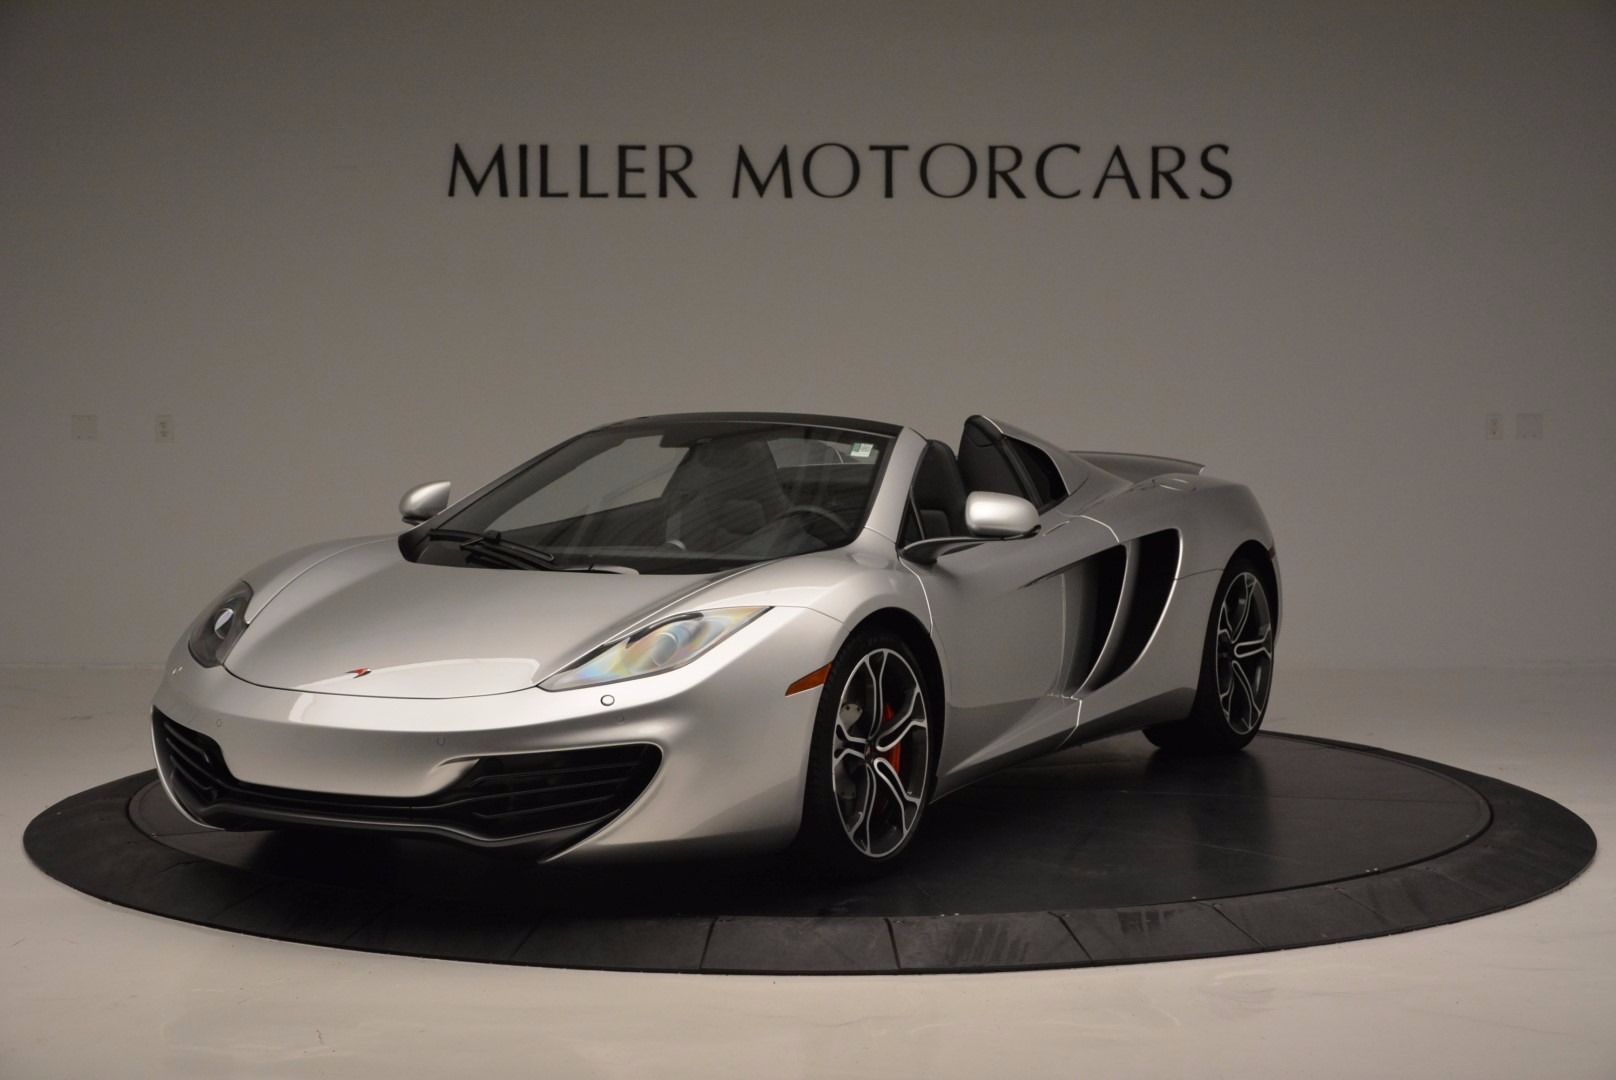 Used 2014 McLaren MP4-12C Spider for sale Sold at Maserati of Greenwich in Greenwich CT 06830 1